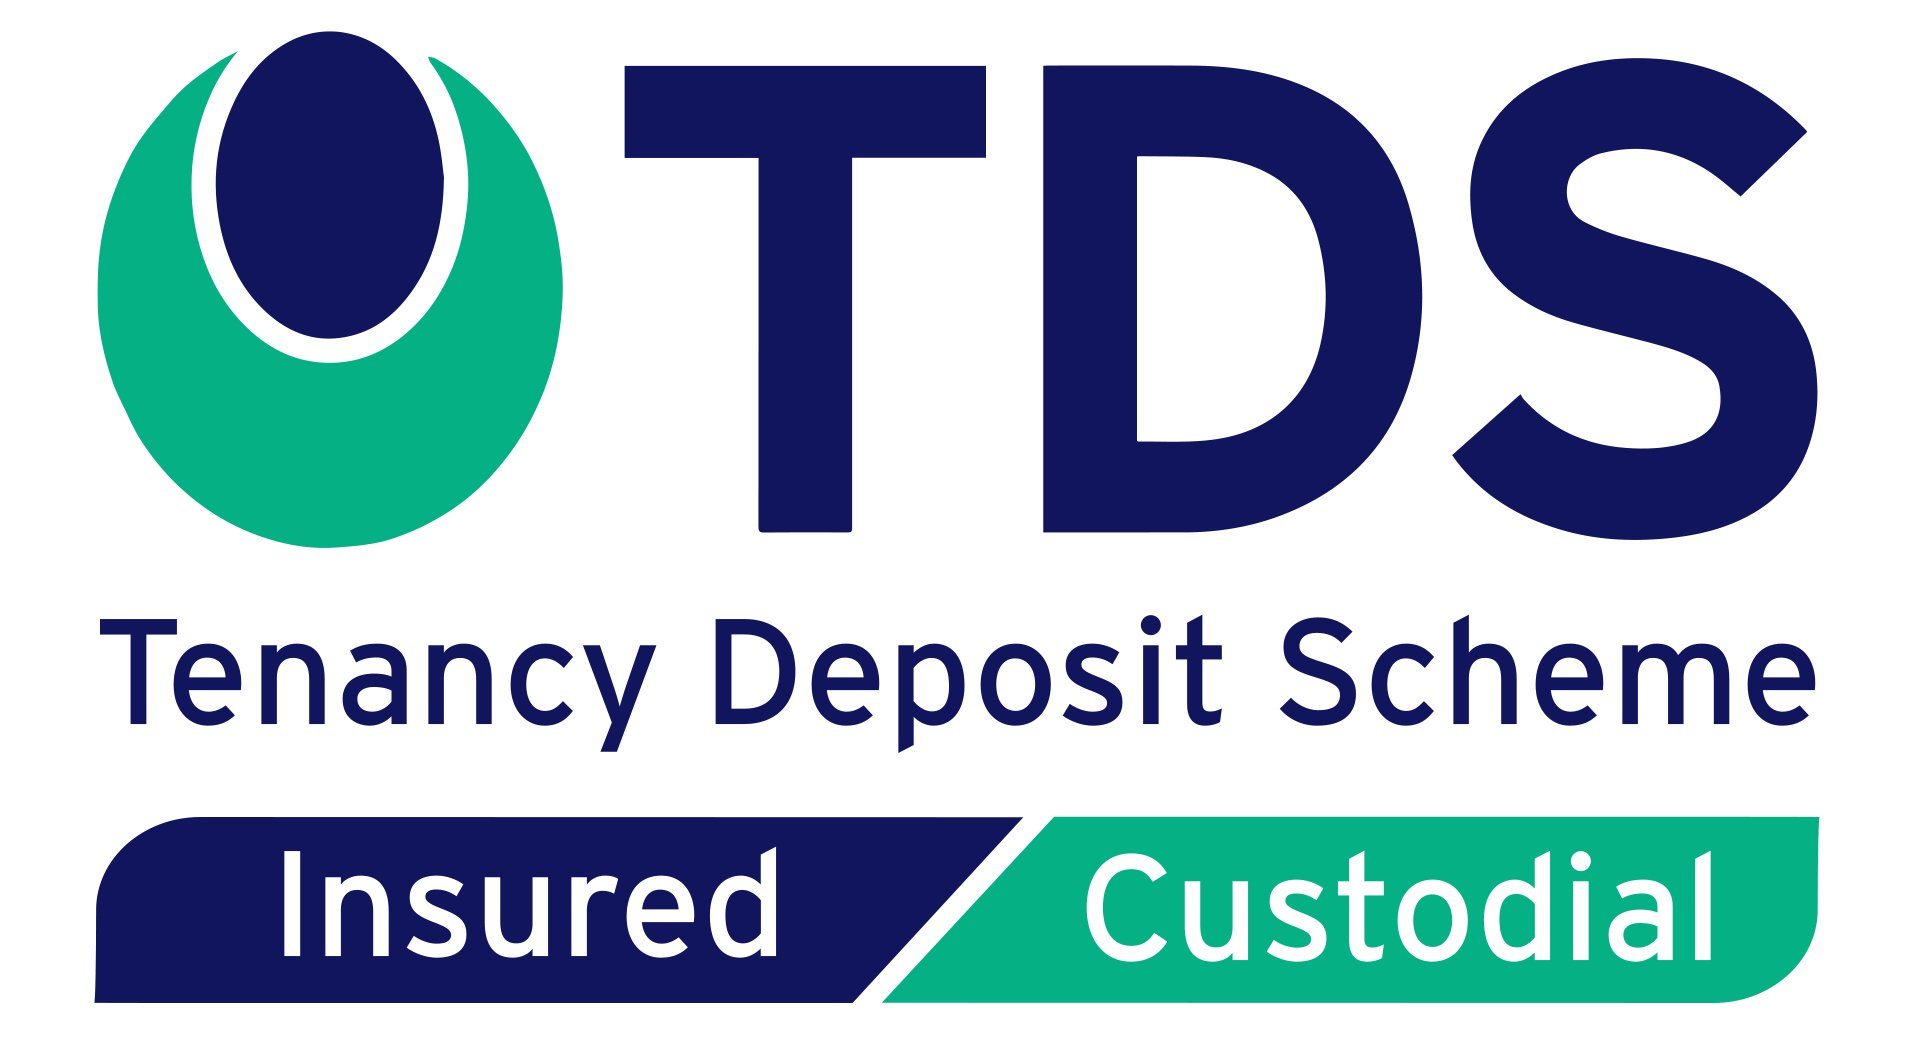 The Deposit Protection Service logo